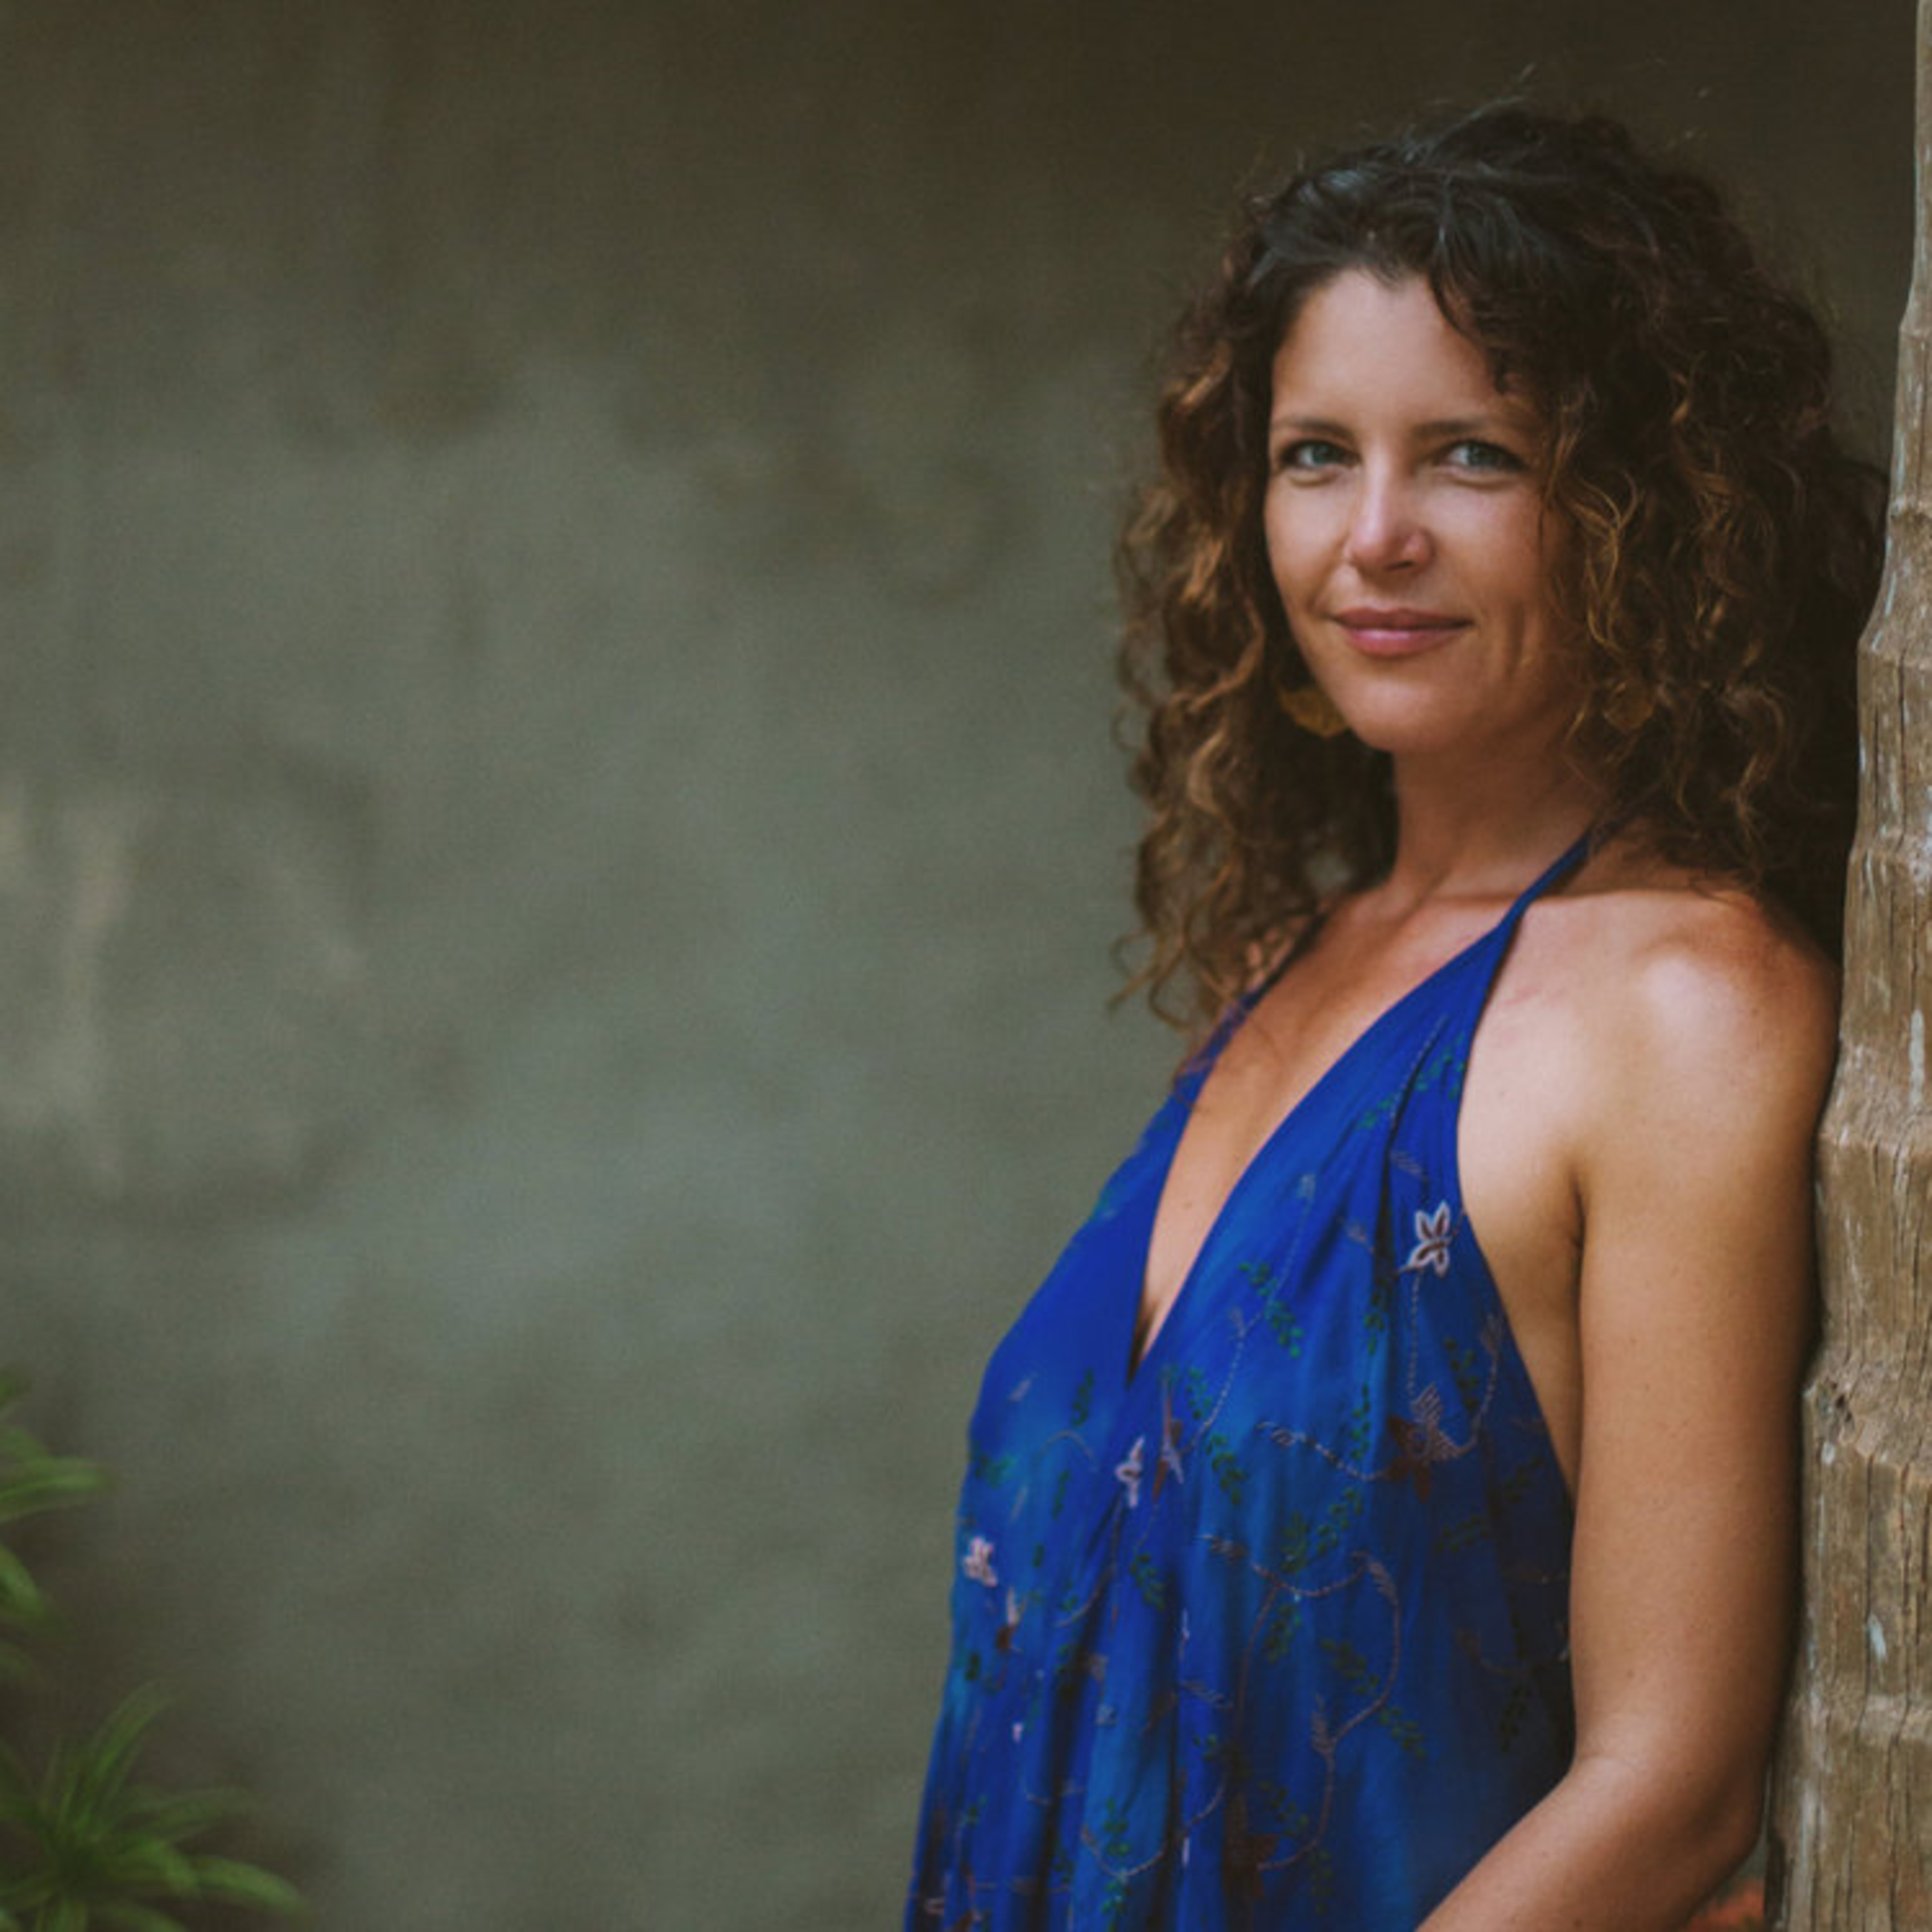 🎧 Yoga & Taboo: Sex, Death & Wealth - Interview with Emily Kuser